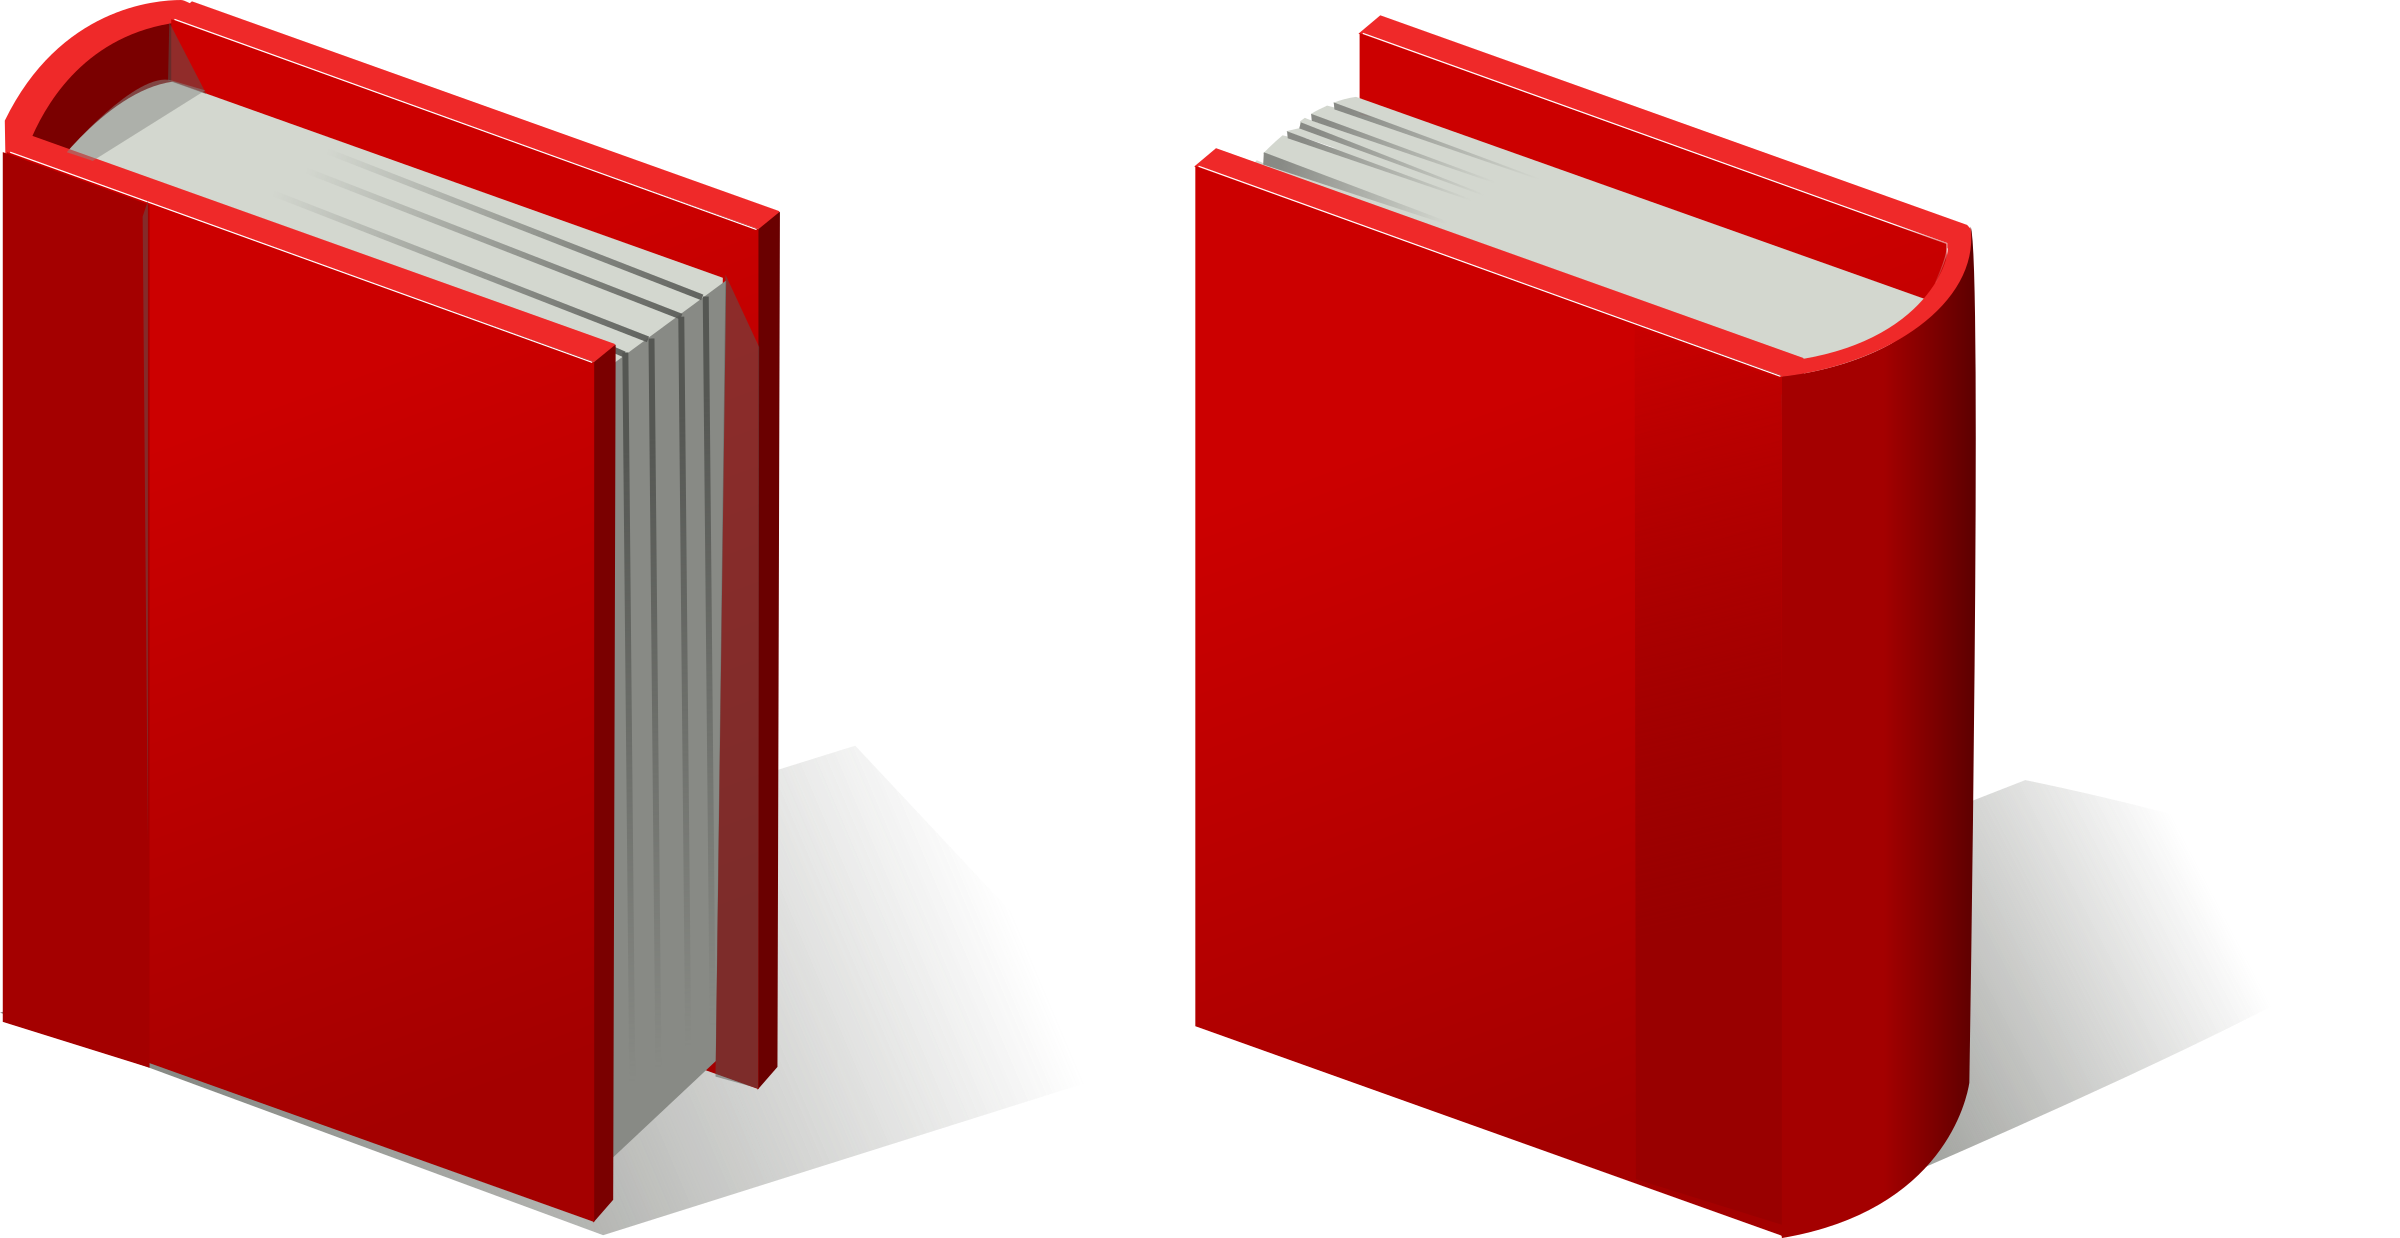 Textbook clipart vector. Pair of red books